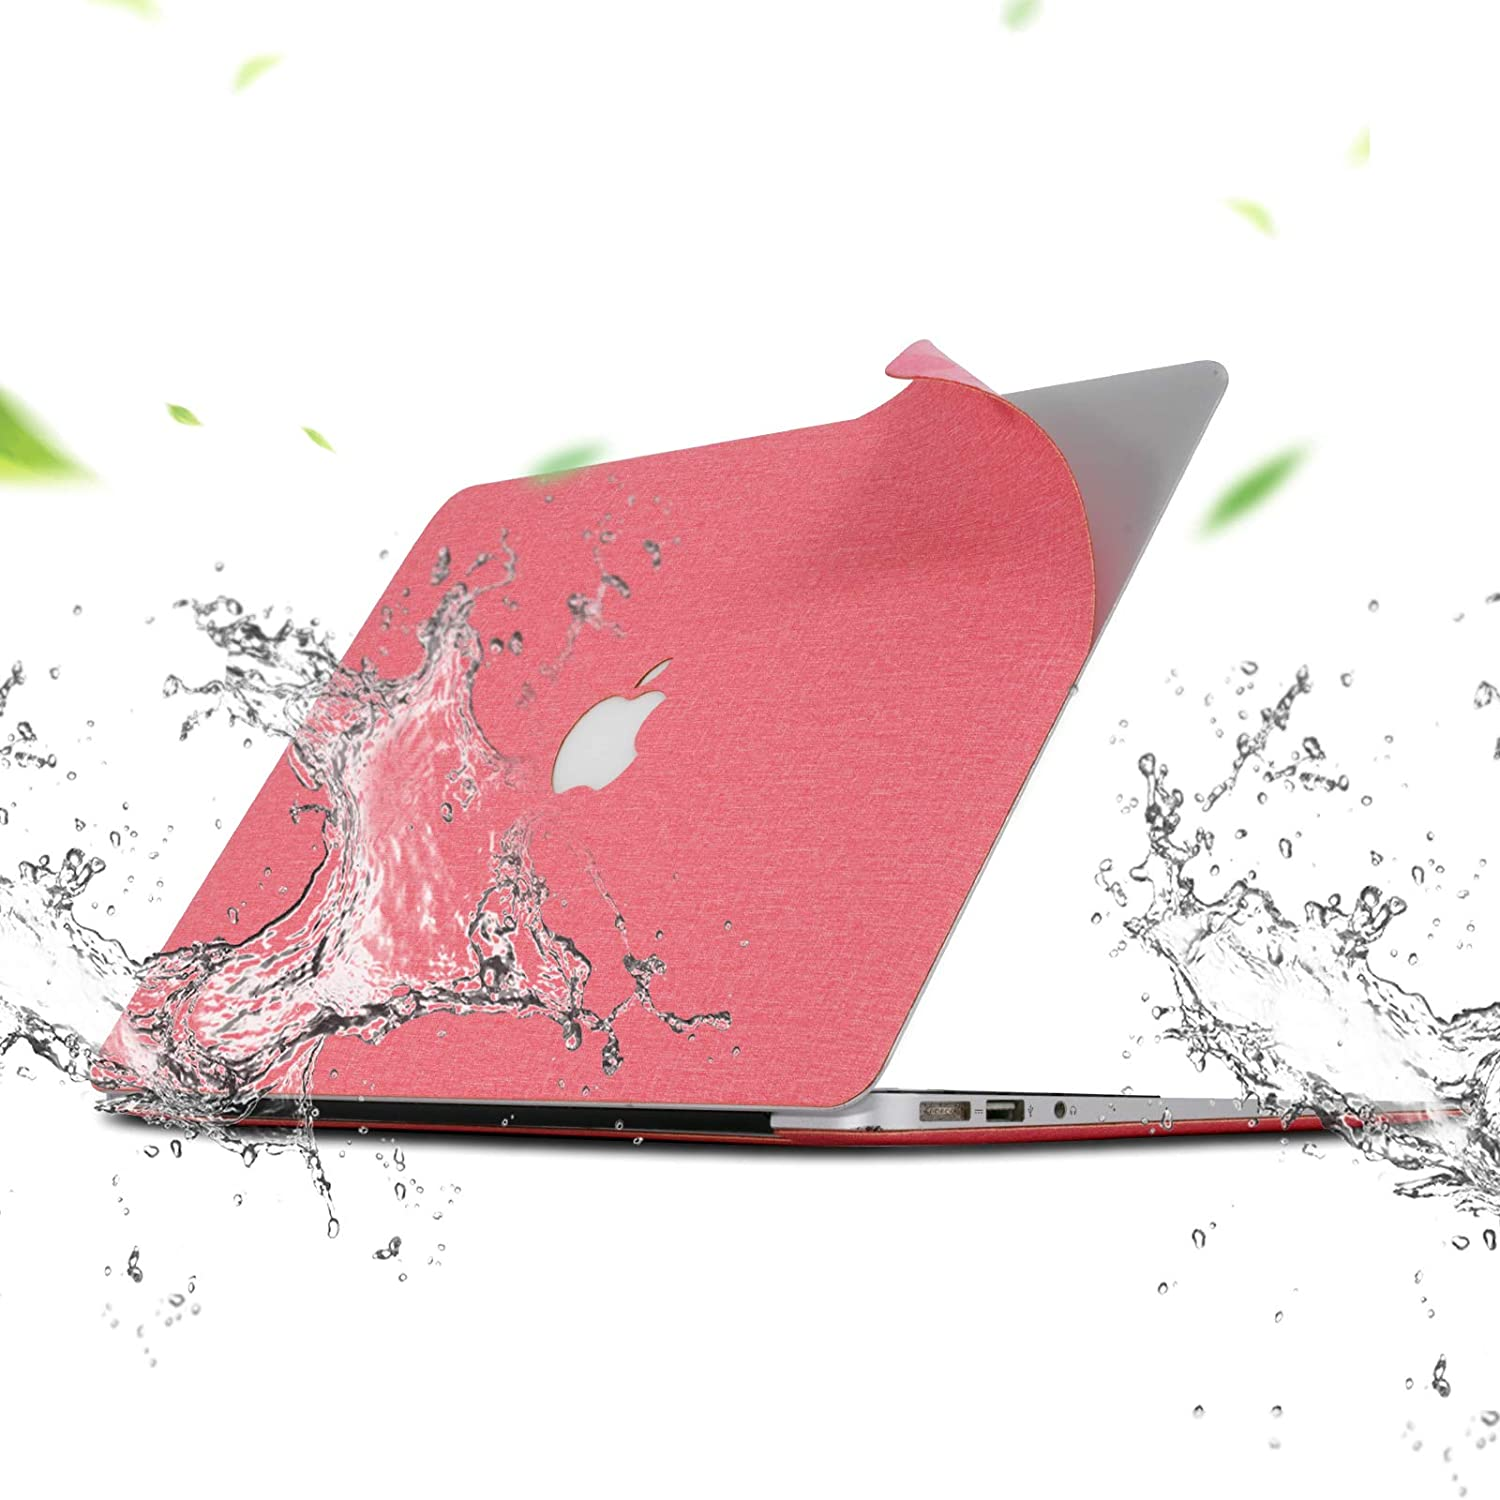 """Magstone Pink Laptop Skins Soft Cloth Fabric Protect Cover Sticker Skin for 13"""" Retina MacBook Pro New MacBook Pro case A1706 A2159 A1989 A1708 A2251 A2289"""